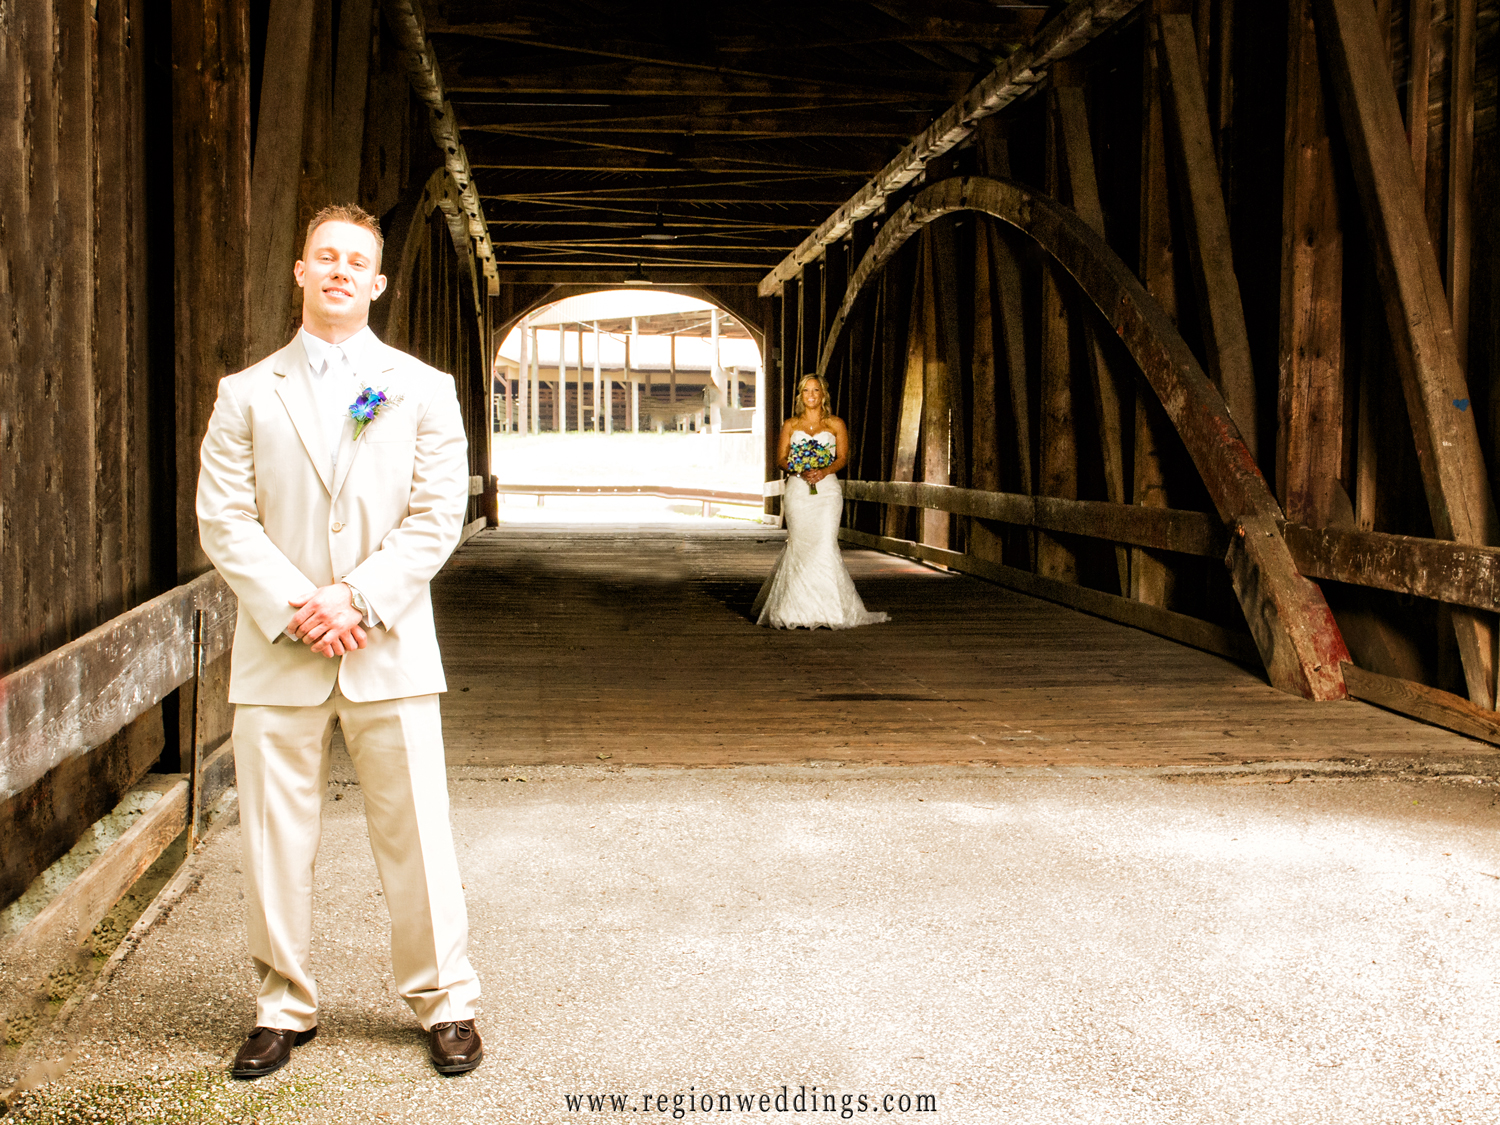 The bride and groom's first look at The Old Covered Bridge at the Lake County Fairgrounds in Crown Point, Indiana.